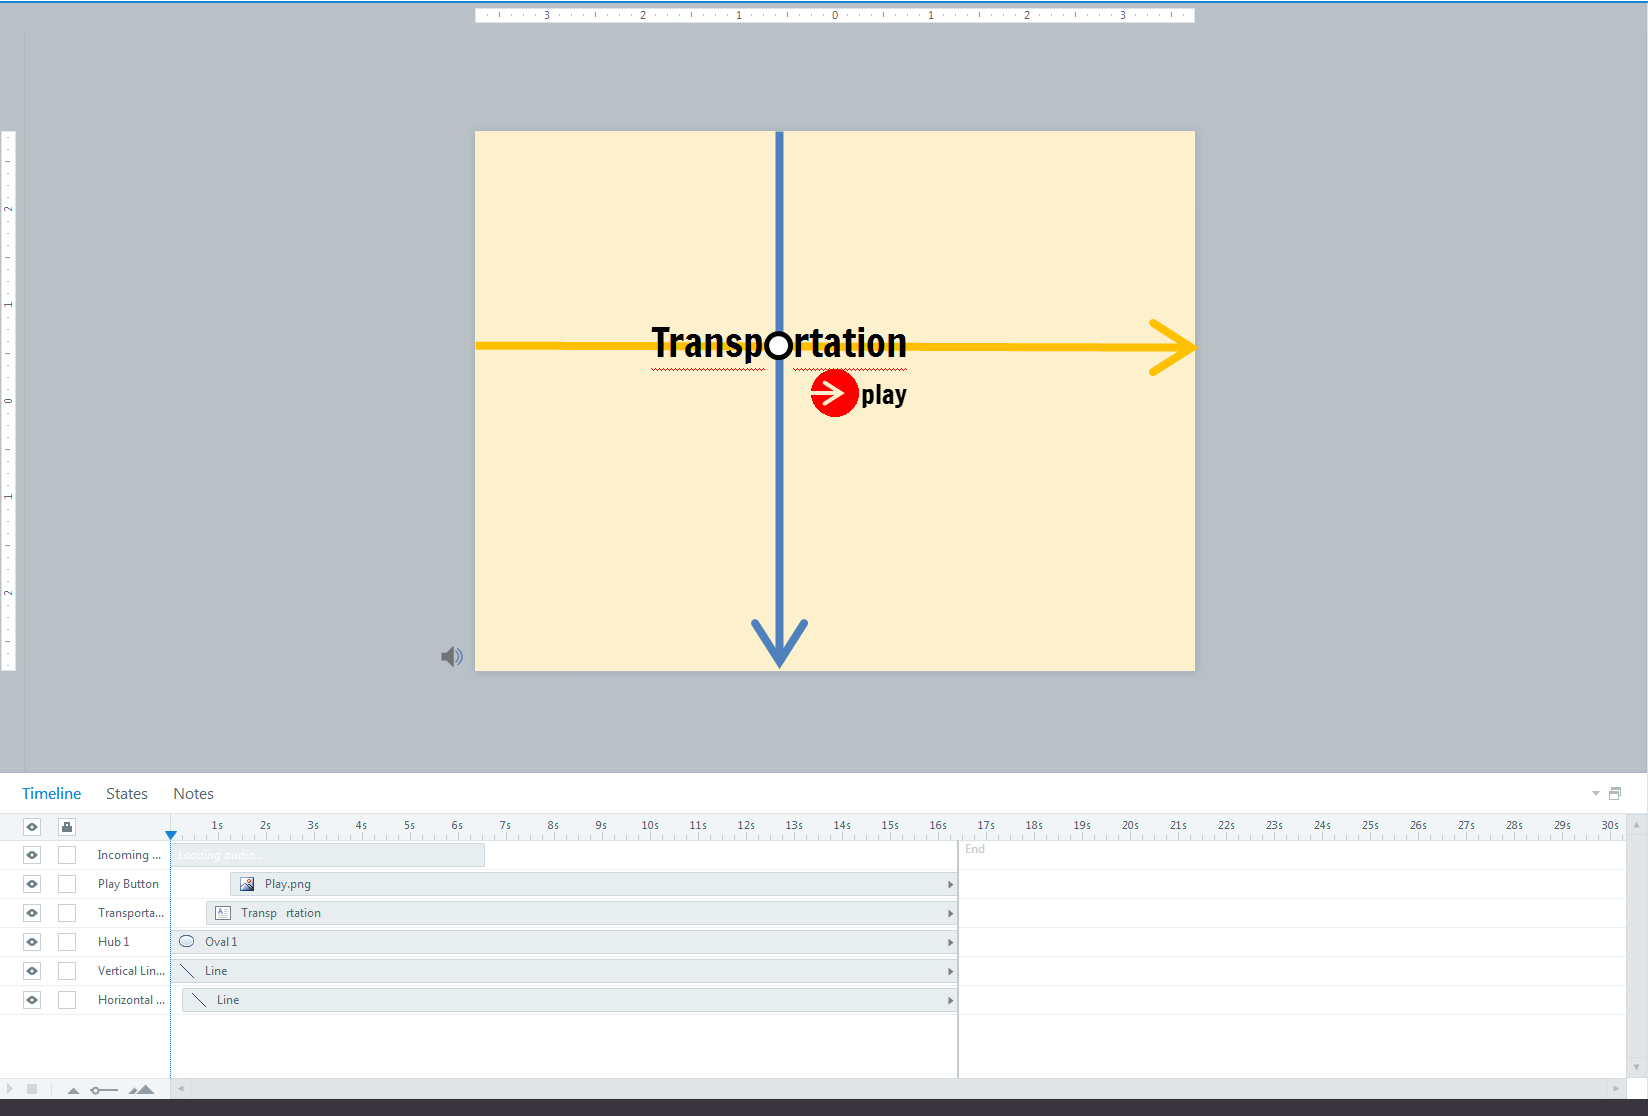 Subway Map In Powerpoint.Here S How I Built This Minimalist Subway Themed Drag Drop